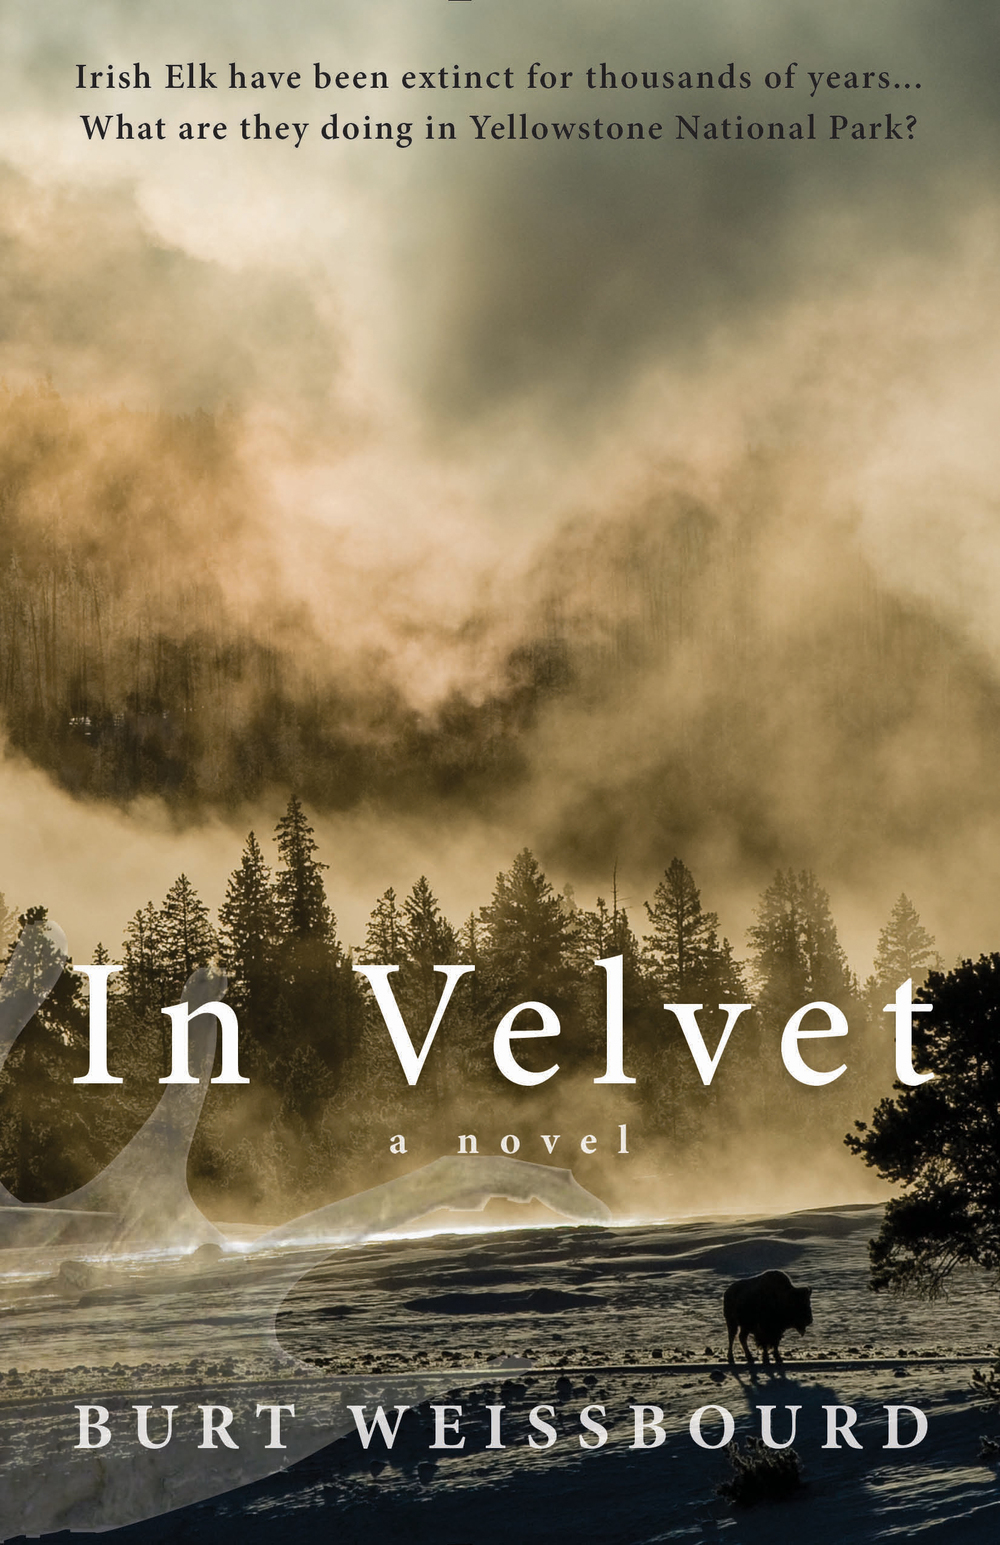 In Velvet by Burt Weissbourd The northwest corner of Yellowstone Park is closed for bear management, and Rachel, a bear biologist, is discovering some very startling animal behavior—grizzlies denning in June, swans at their wintering grounds in summer, what appear to be Irish Elk, an extinct species, with huge palmated antlers. There are also horrific mutations in the young—elk calves with no front legs, earless bear cubs, and eaglets without wings. What has gone wrong? Why is this area closed? Who's covering up these animal abnormalities in the Park?